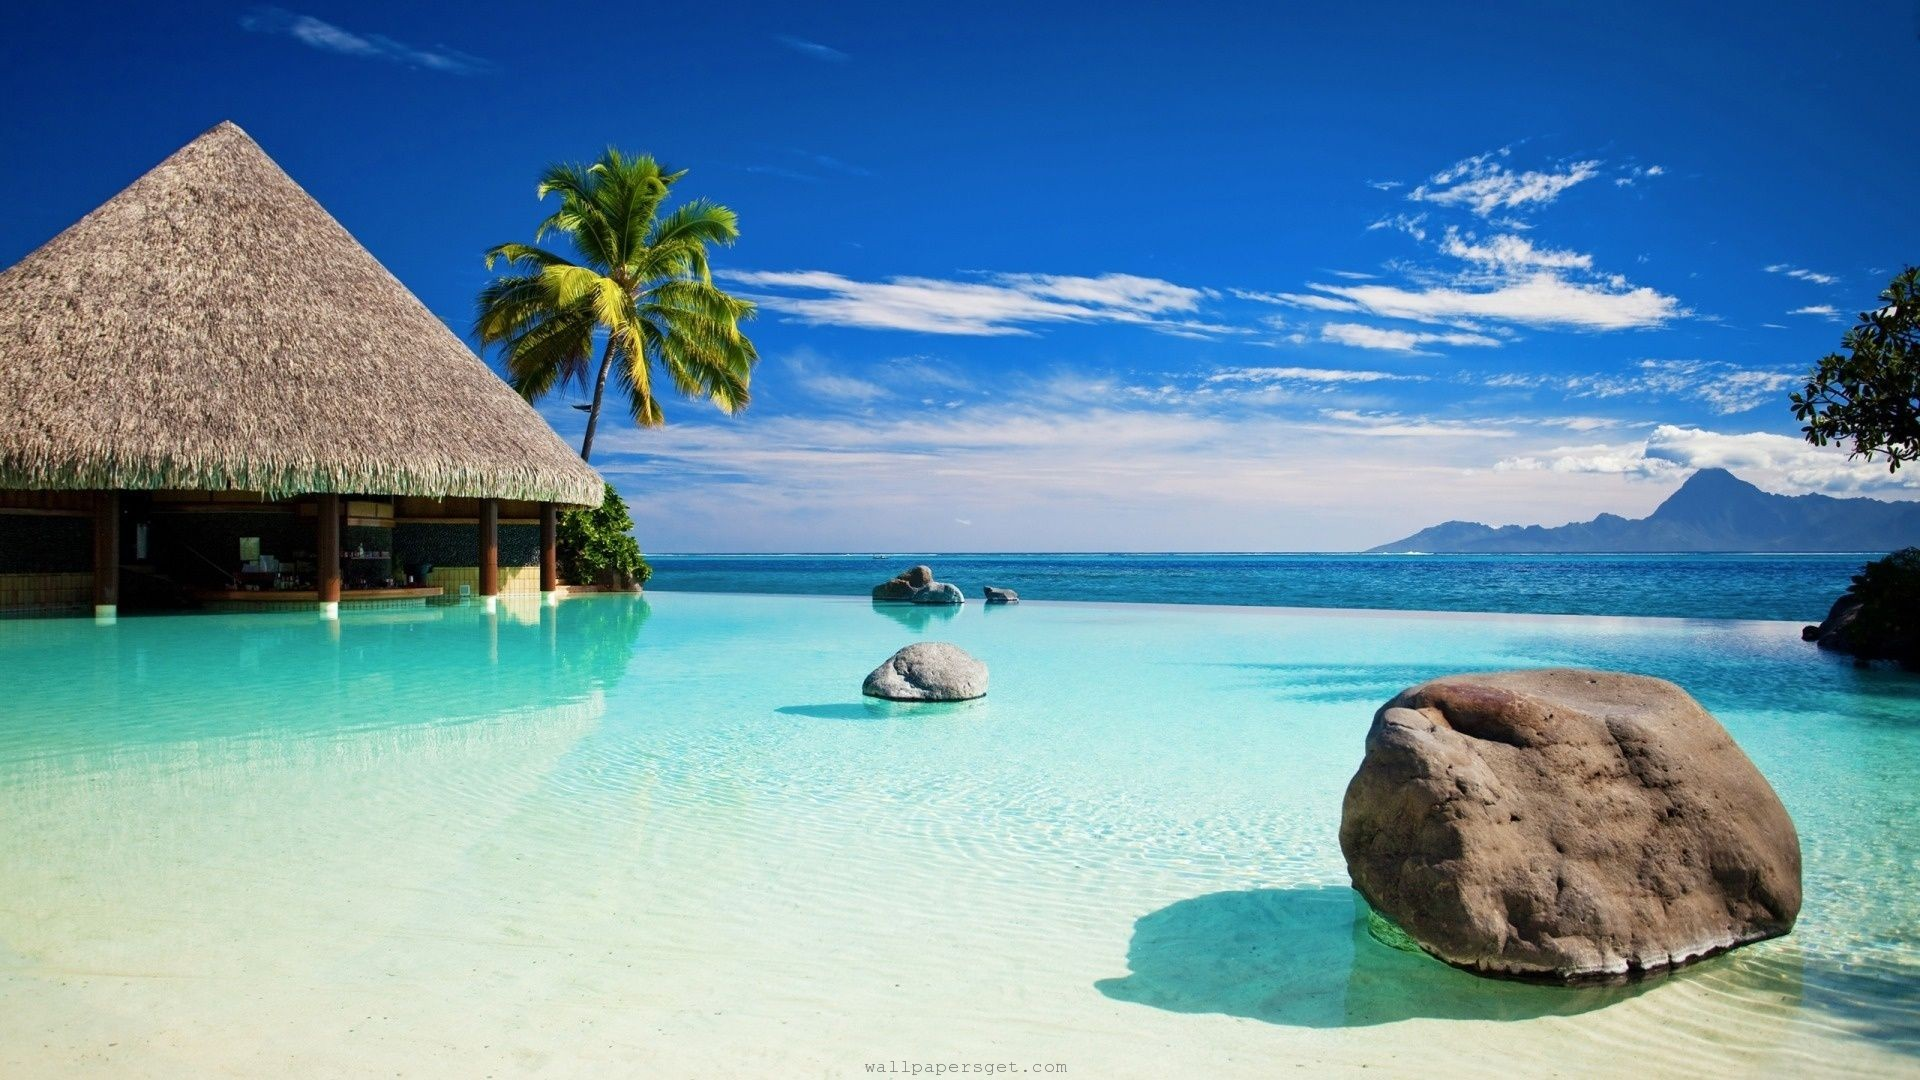 A picture of an exotic island.